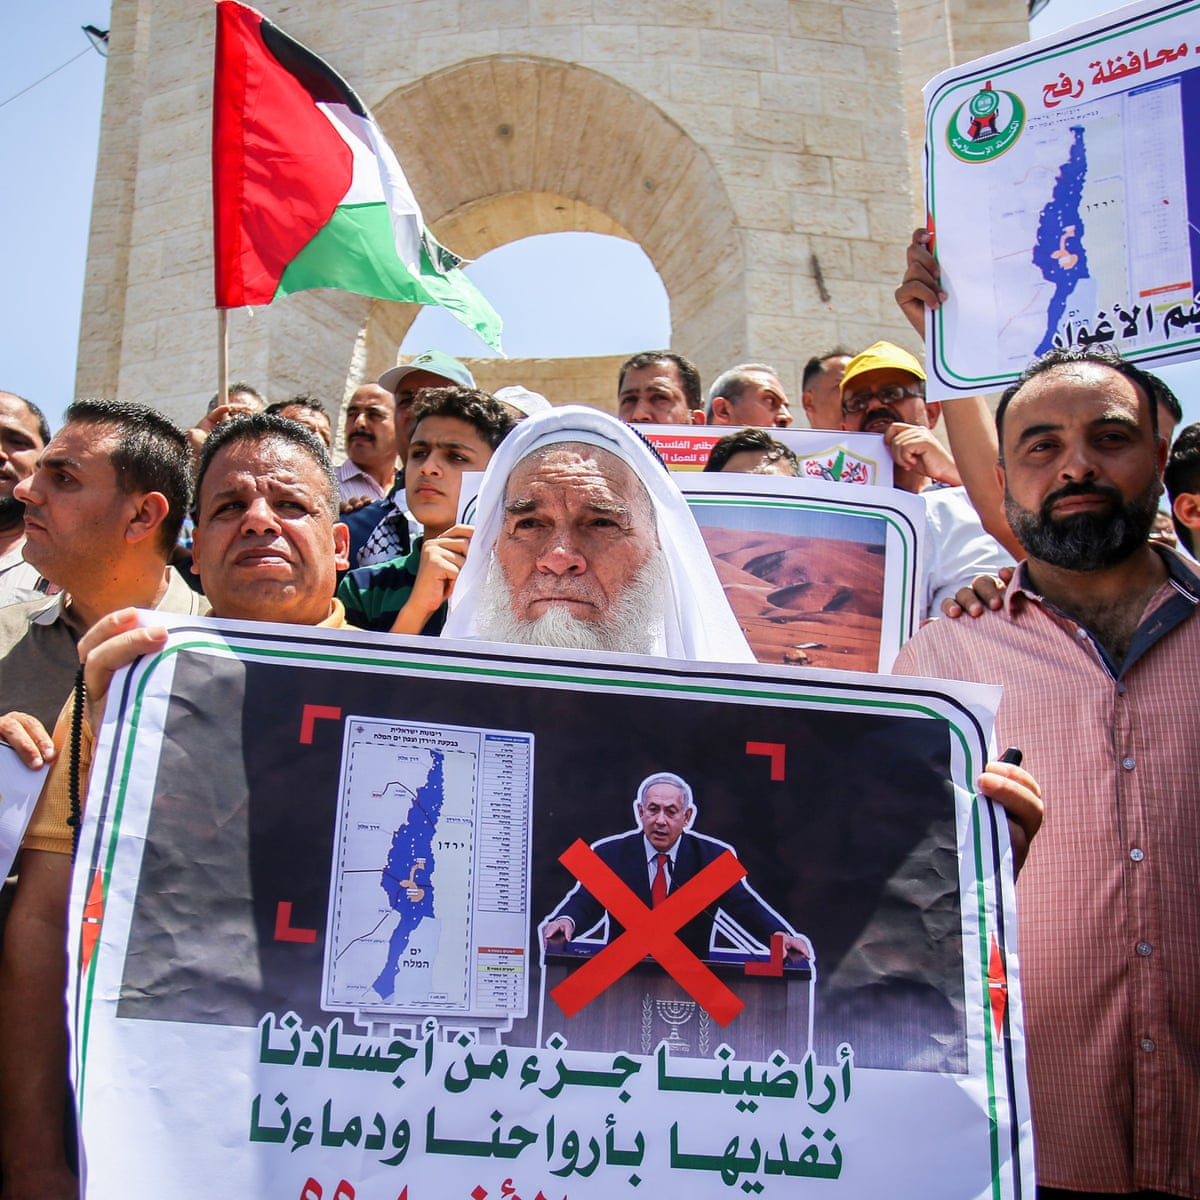 Israel's annexation of the West Bank will be yet another tragedy ...